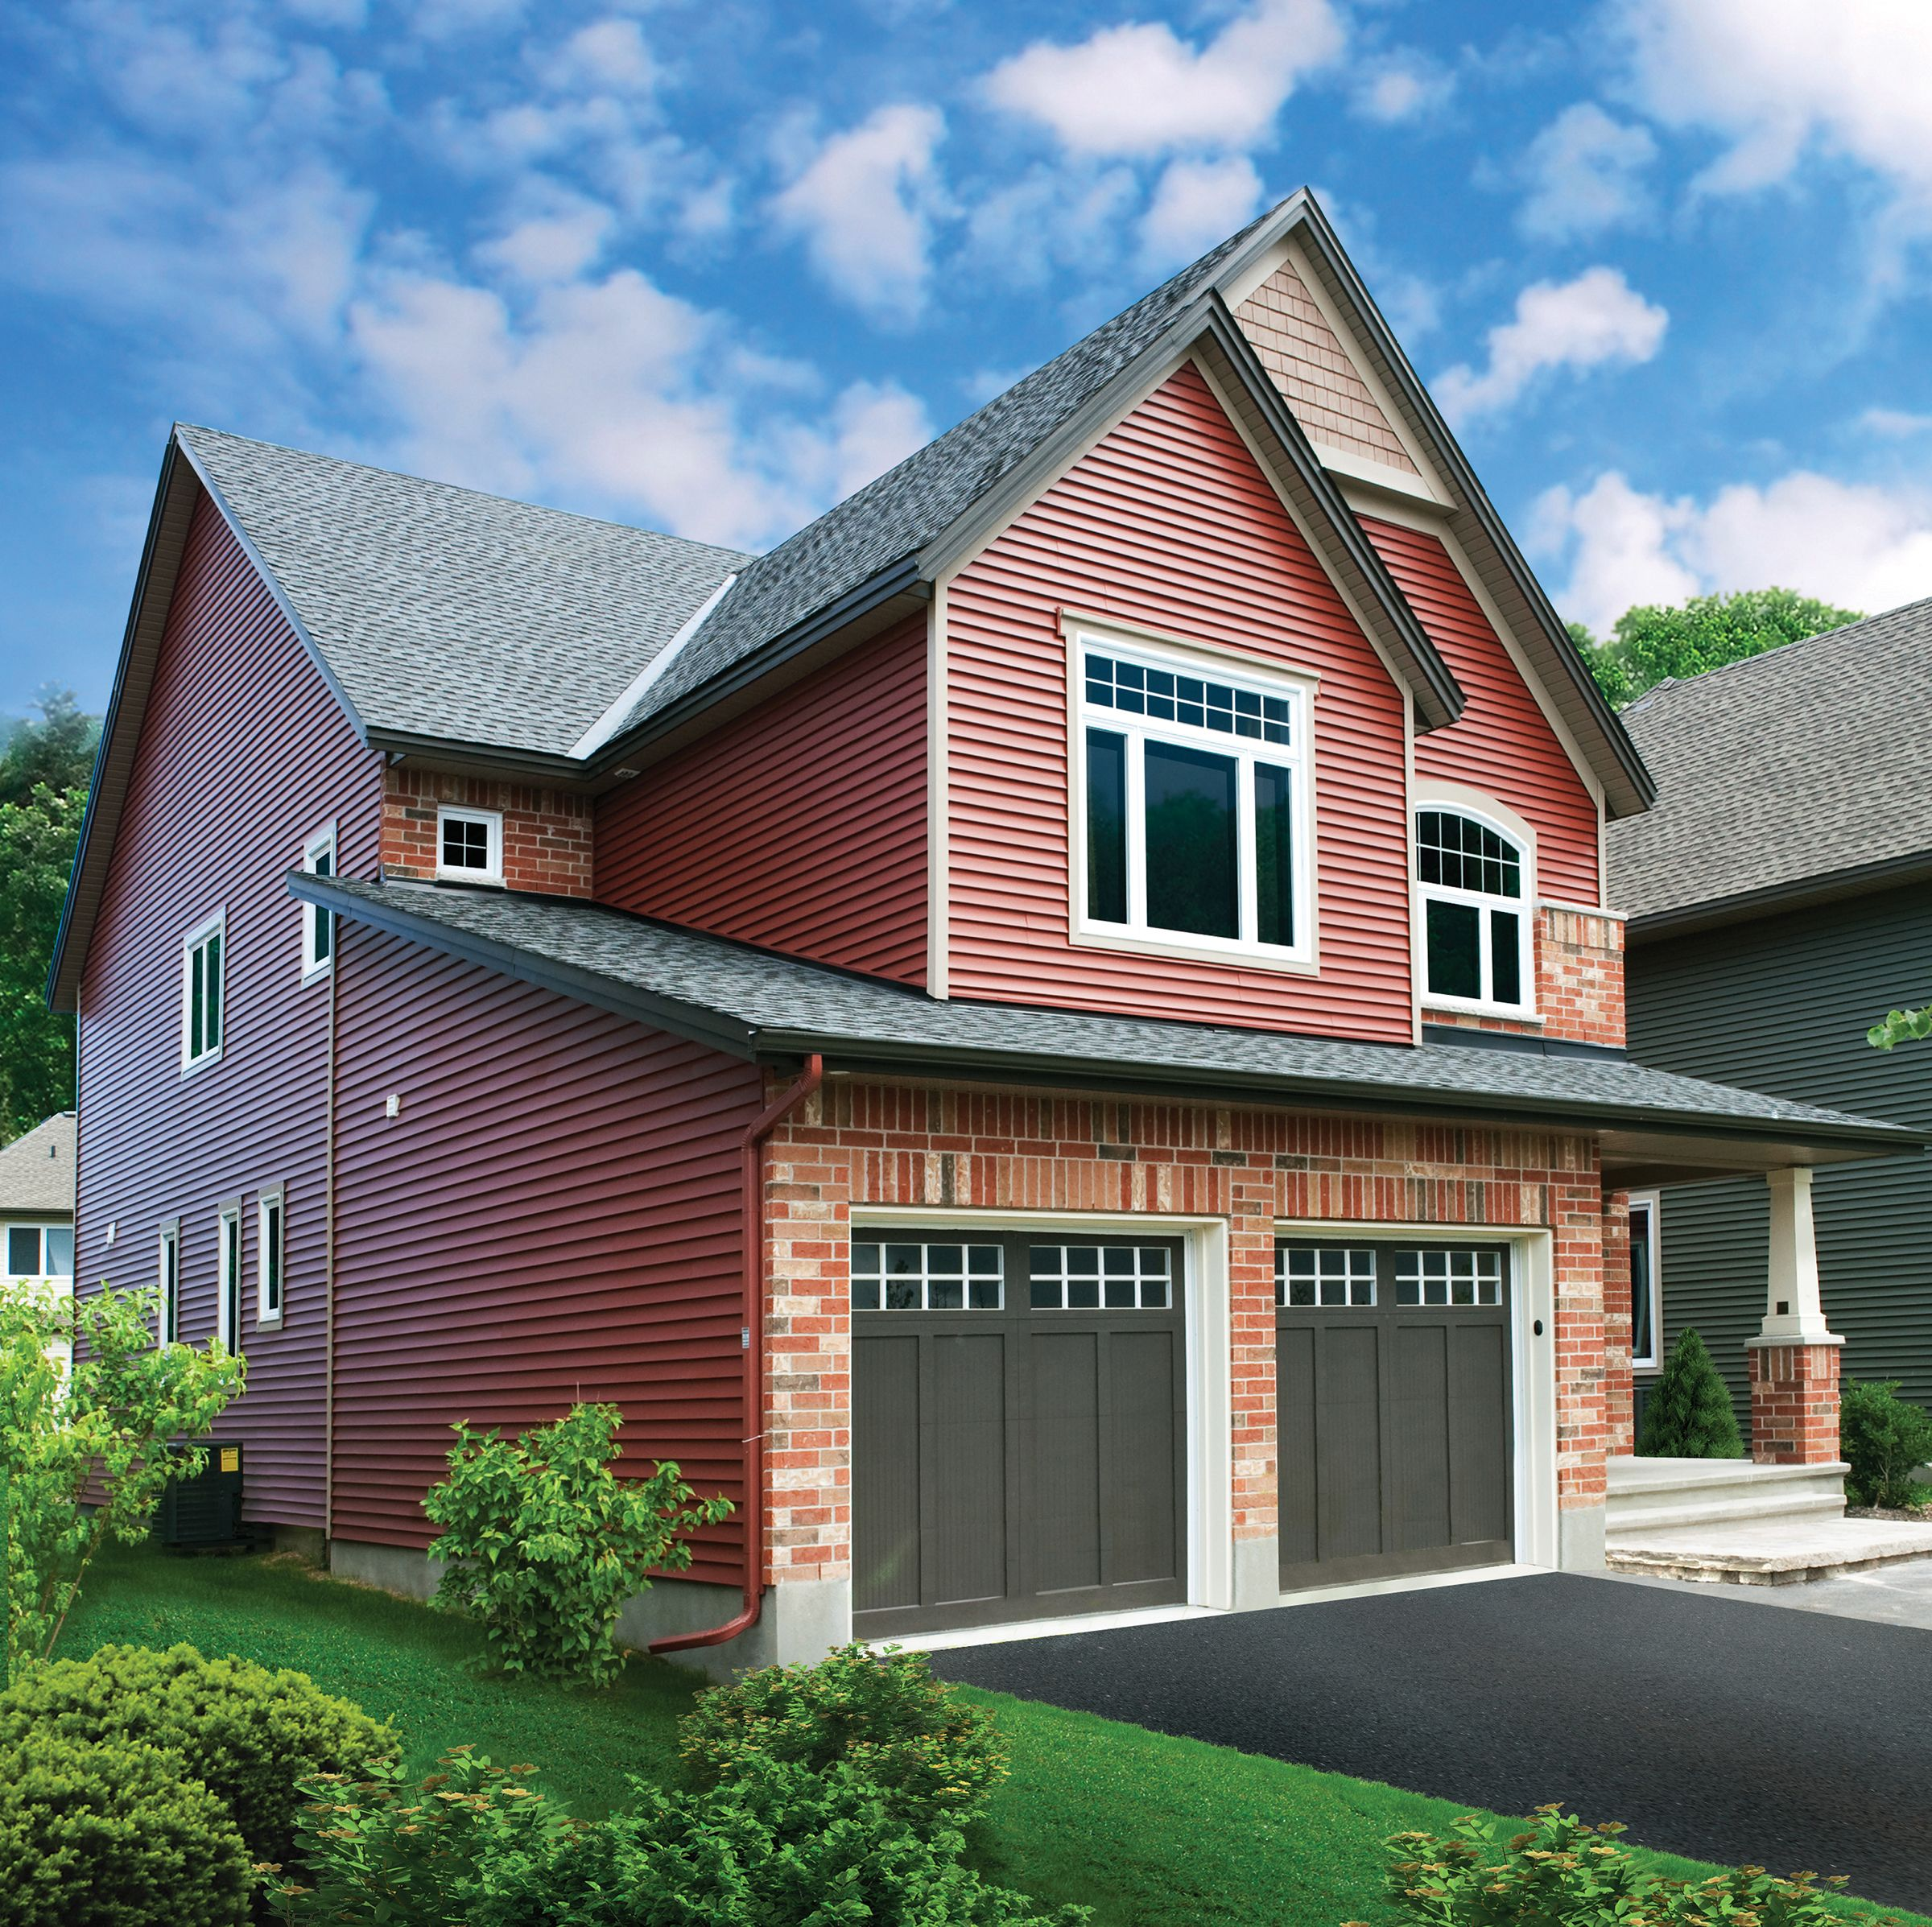 1000 ideas about shiplap siding on pinterest wood siding chip and - Venetian Red Vinyl Siding With Snow White Trim And Brown Door Siding